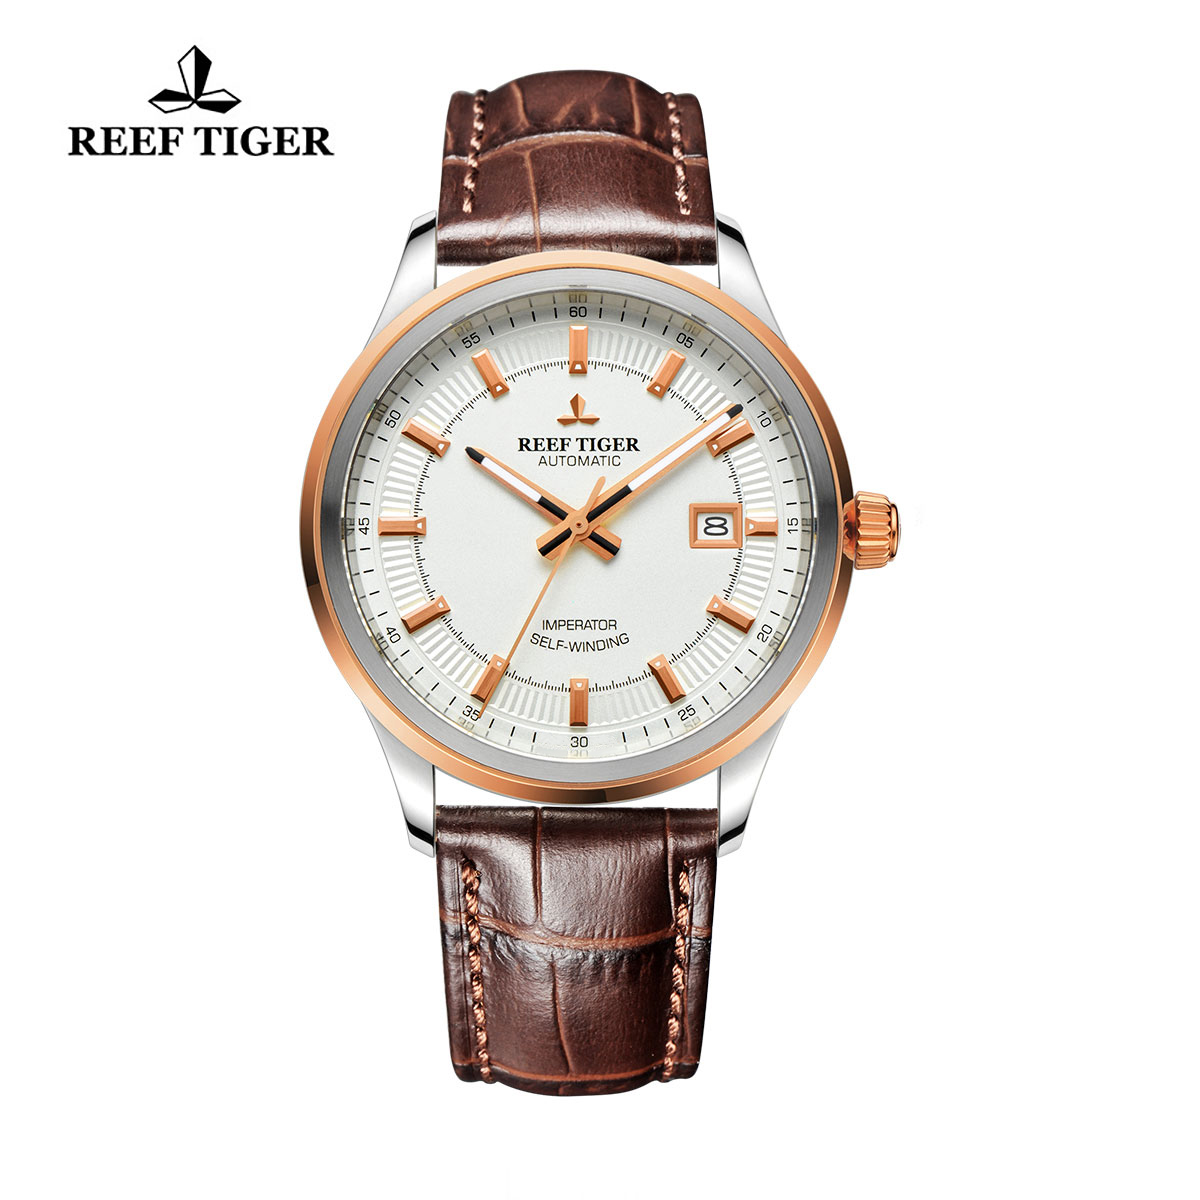 Reef Tiger Imperator Dress Watch Automatic White Dial Calfskin Leather RGA8015-PWB